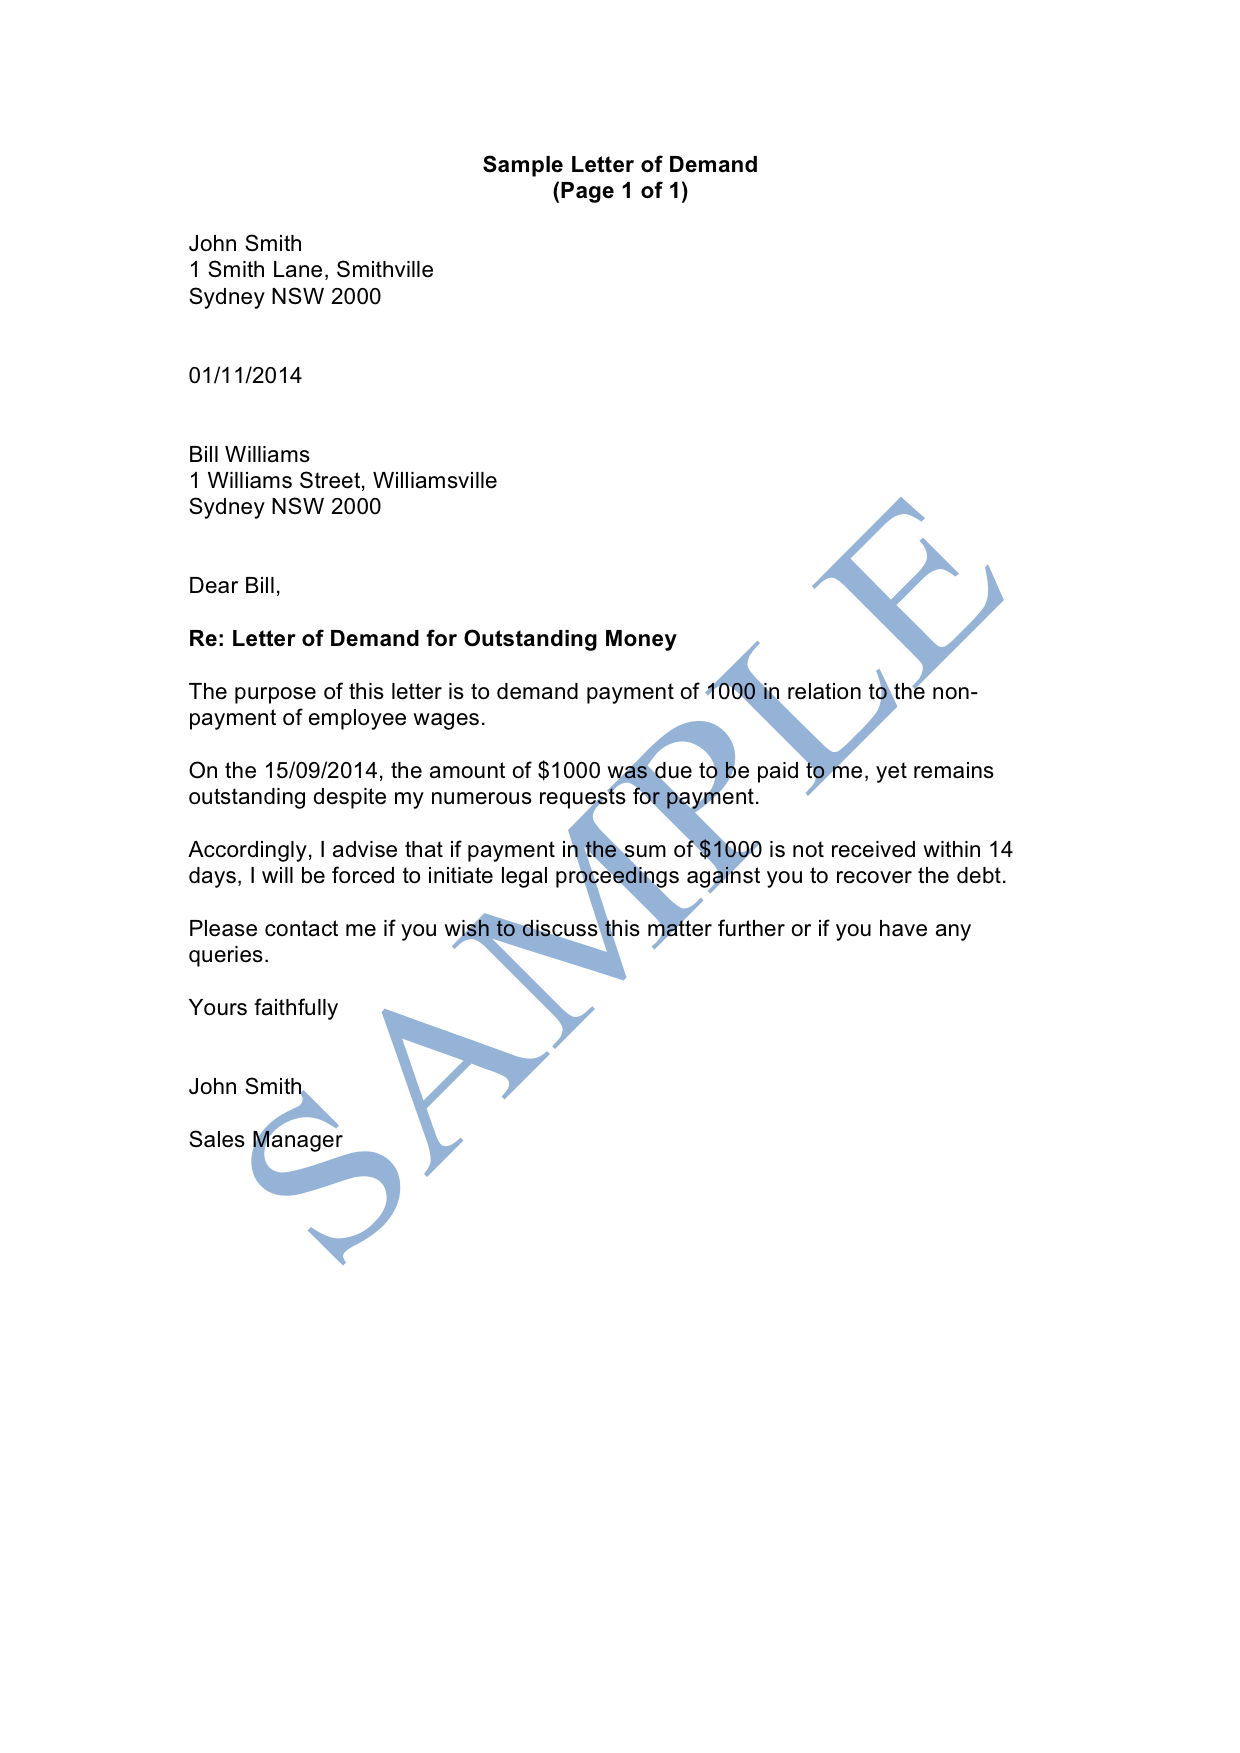 NEW%20SAMPLE%20Letter_of_Demand Salary Demand Letter Template on for suiting companies, for quality, earnest money, insurance company, for injury, editable free, diminished value, for services, don compton book, turning robocalls into cash, free download print, sample security deposit, for damages,